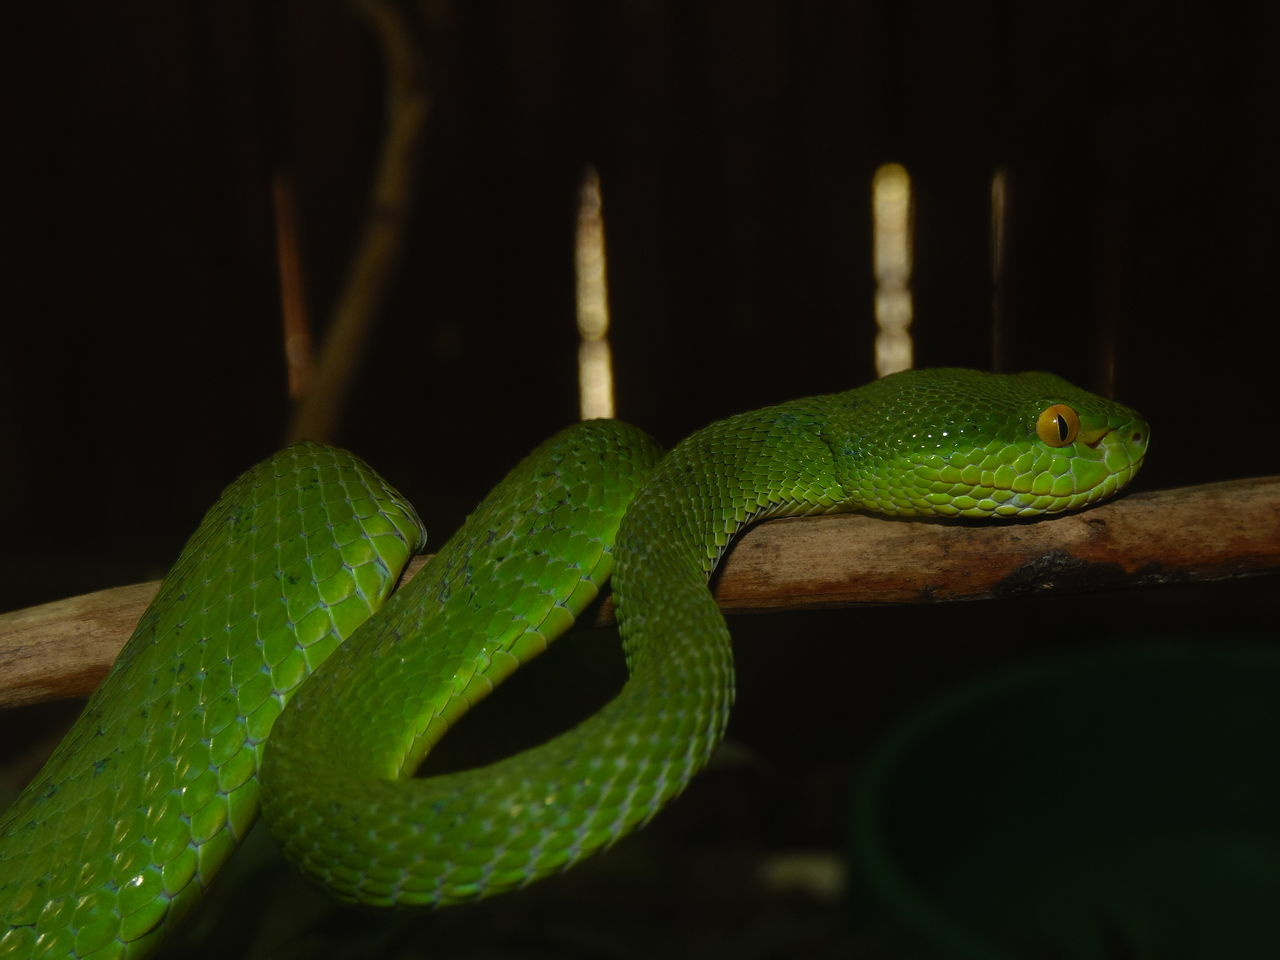 Viper  Dangerous Green Awesome_view Green Snakes /tree Snake Wildlife & Nature